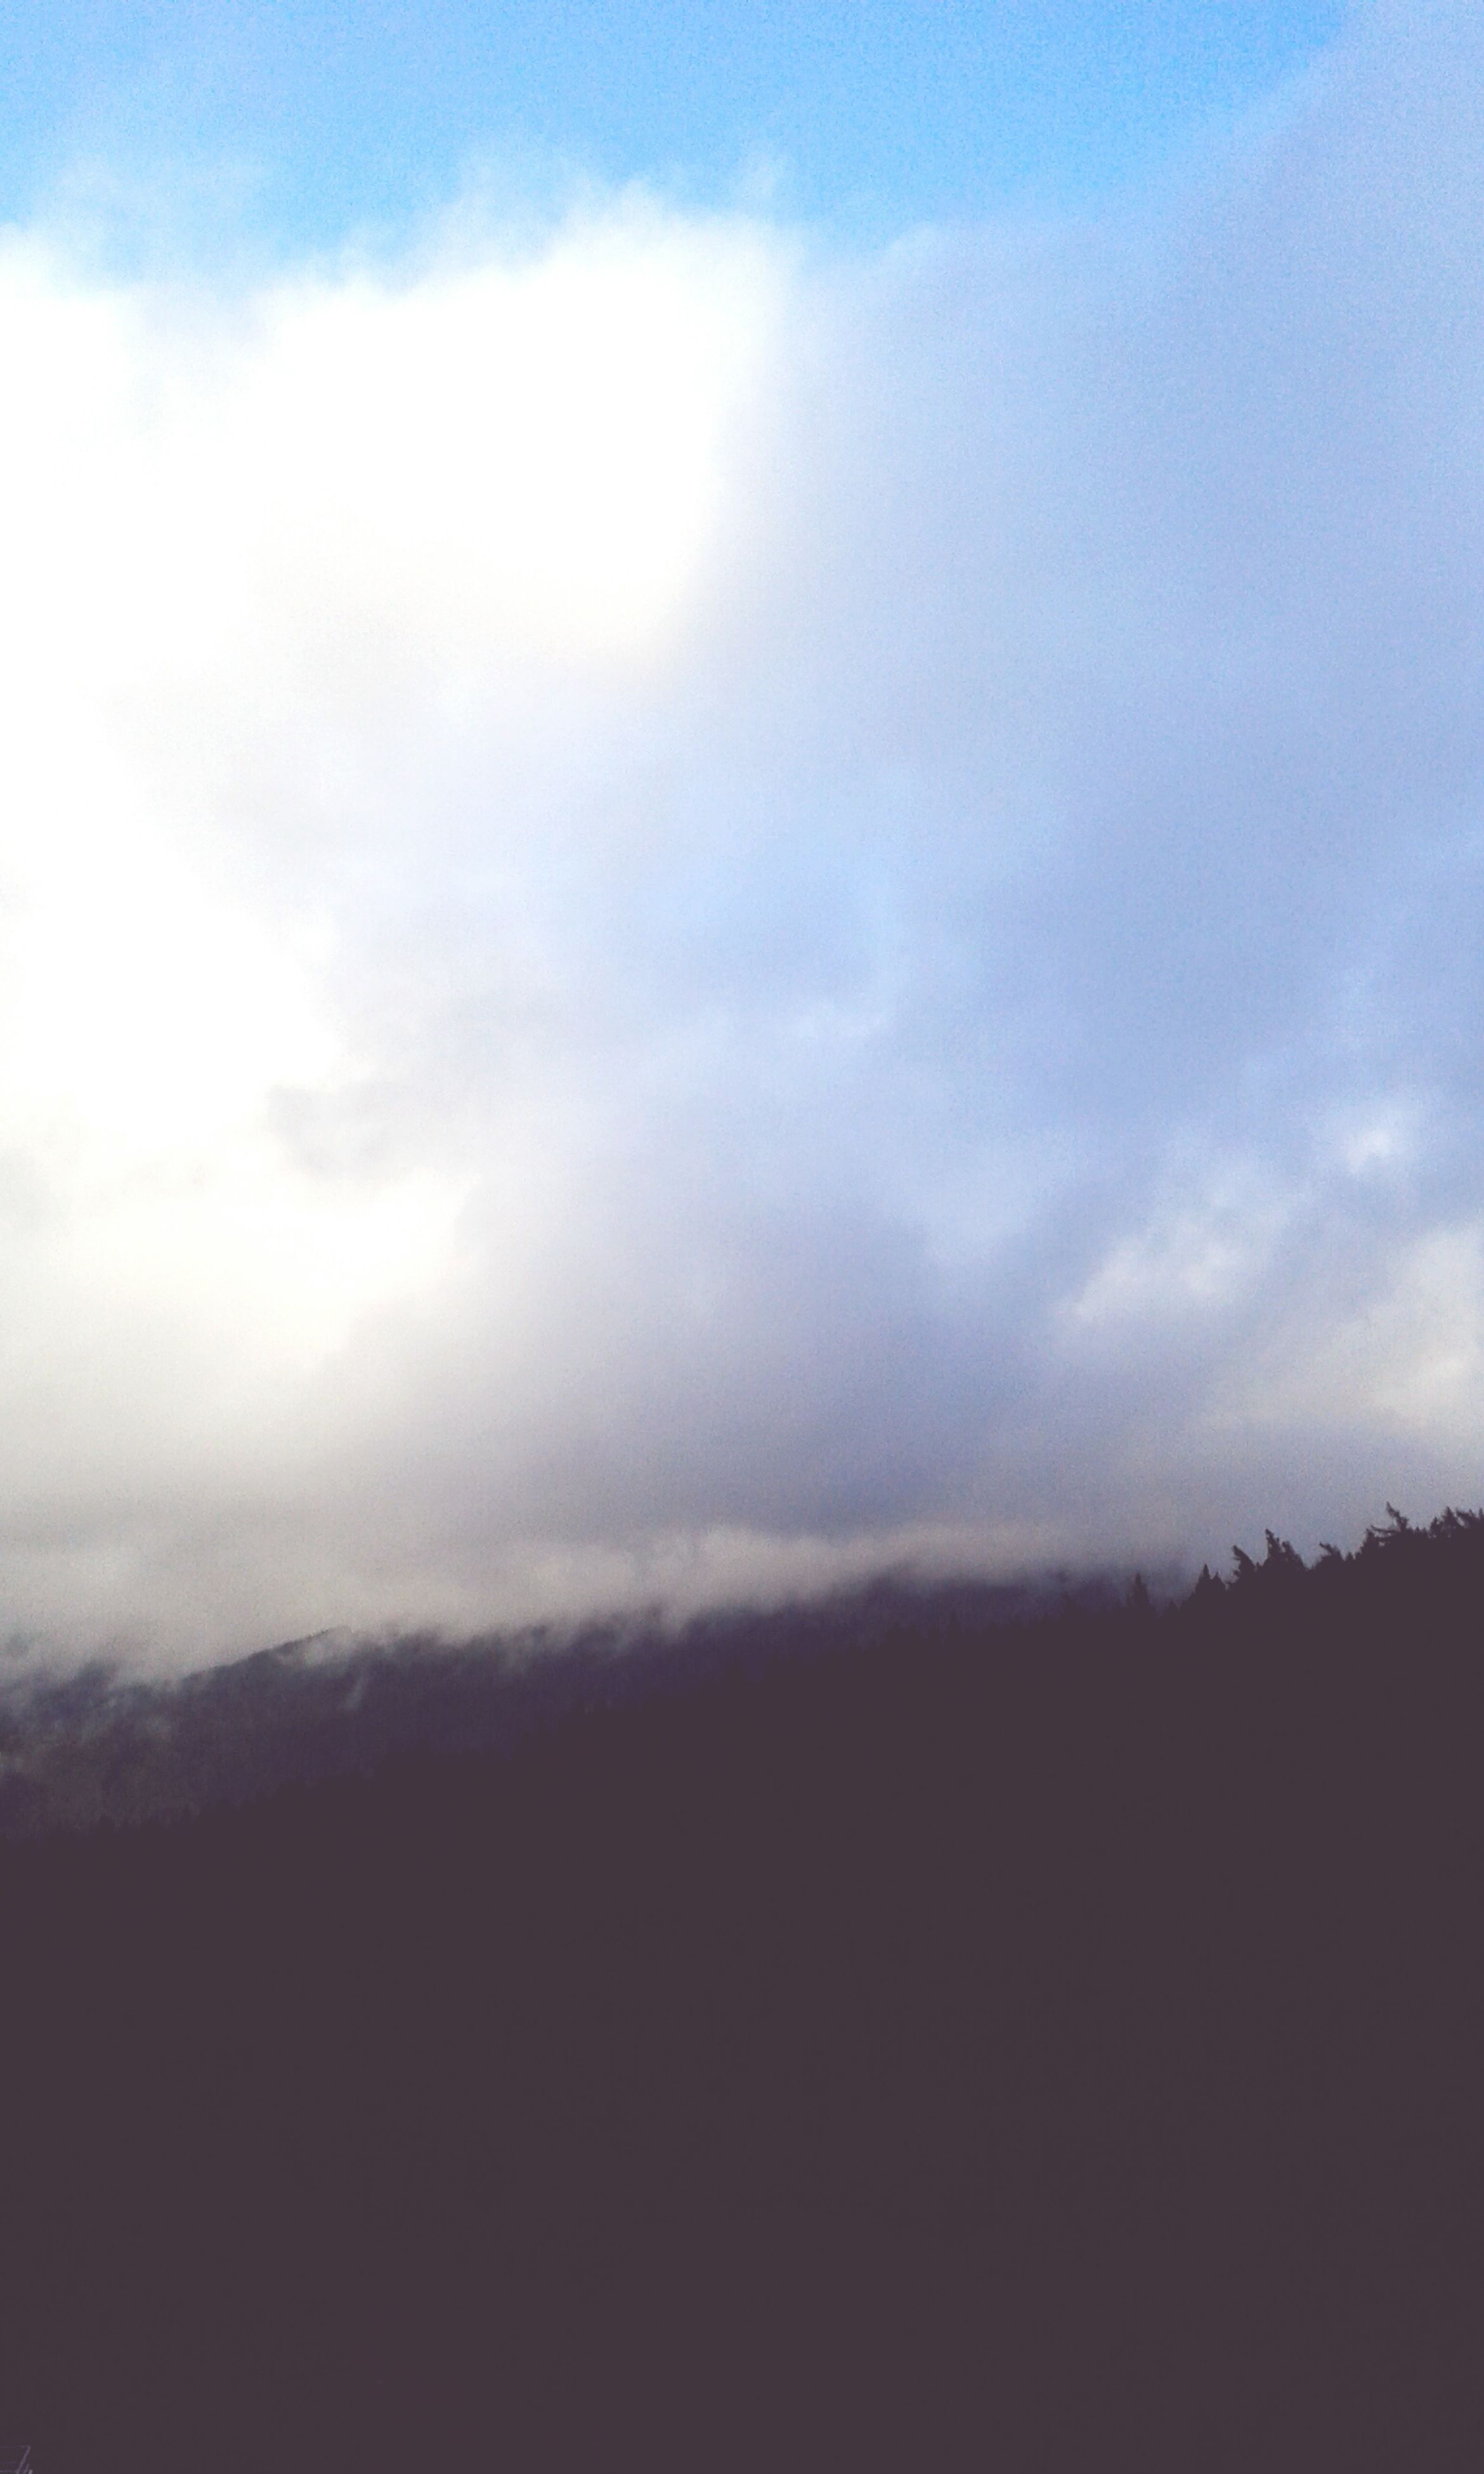 silhouette, tranquil scene, tranquility, scenics, landscape, beauty in nature, sky, nature, cloud - sky, calm, dark, cloud, majestic, cloudscape, day, non-urban scene, outdoors, mountain, outline, cloudy, no people, atmospheric mood, atmosphere, remote